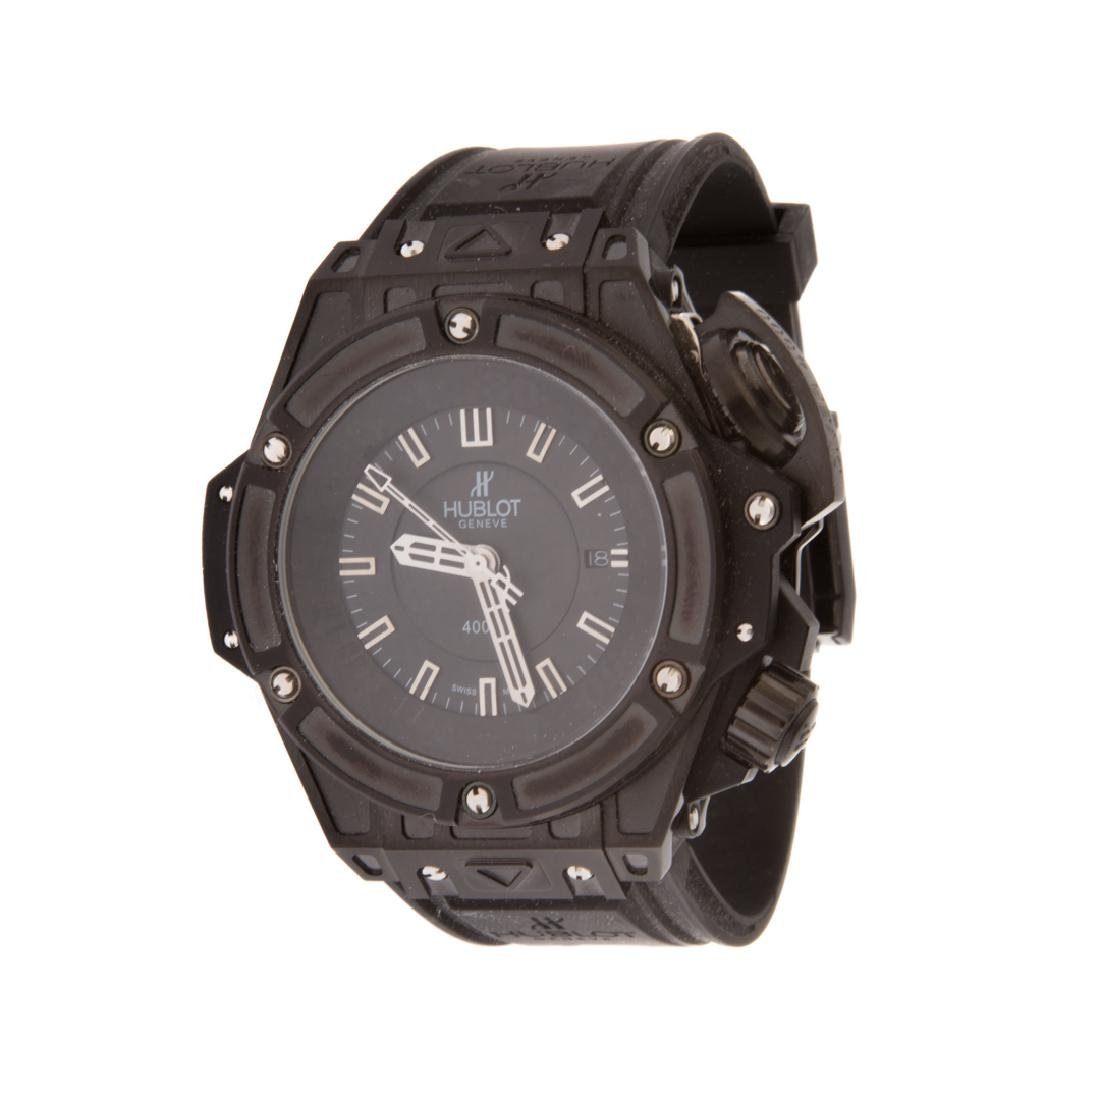 A Gent's Hublot Inspired Diver 4000 Watch